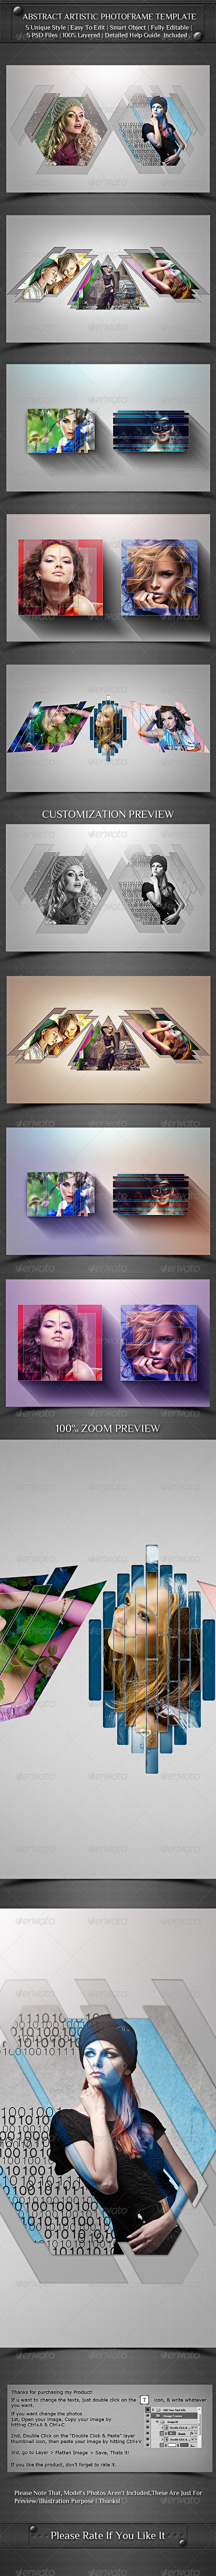 GraphicRiver Abstract Artistic Photoframe Template 8168325